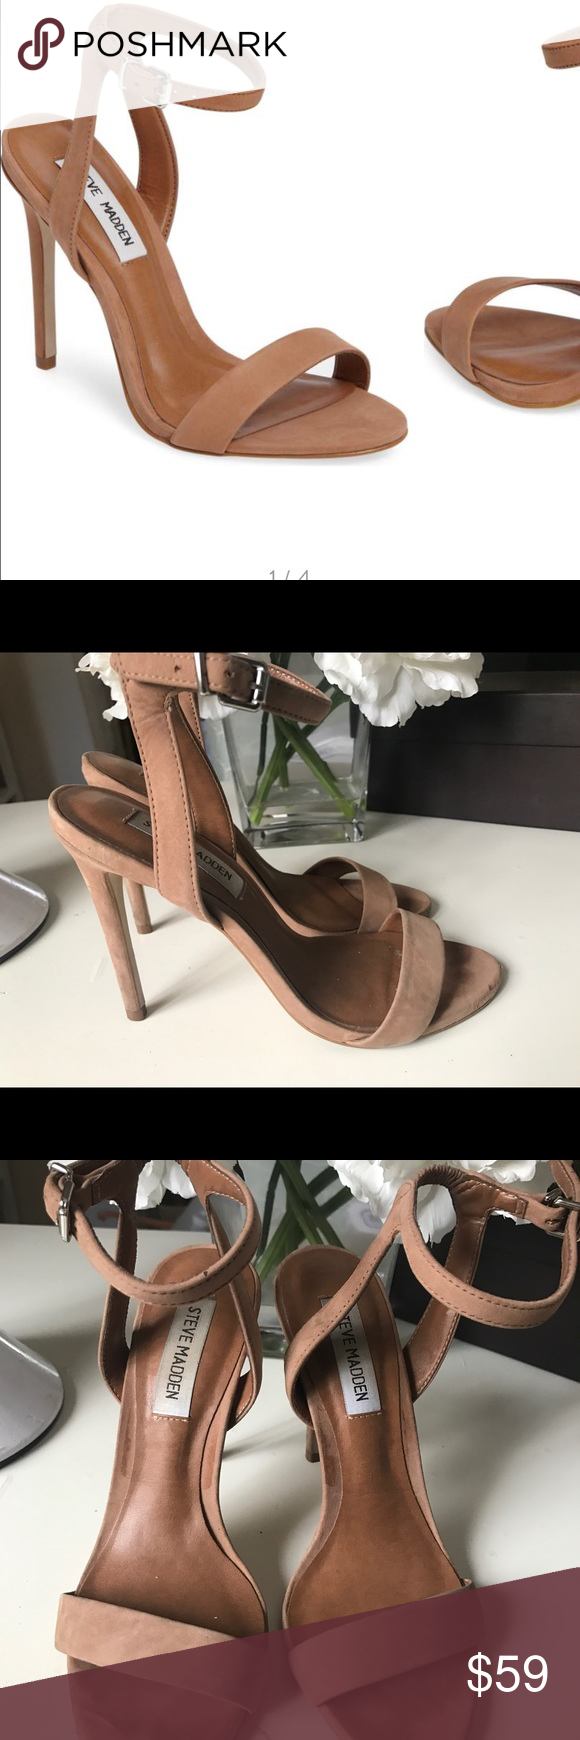 5c0a745999b Steve Madden landen ankle straps heels tan nubuck Pre-owned size 5.5 In  excellent condition